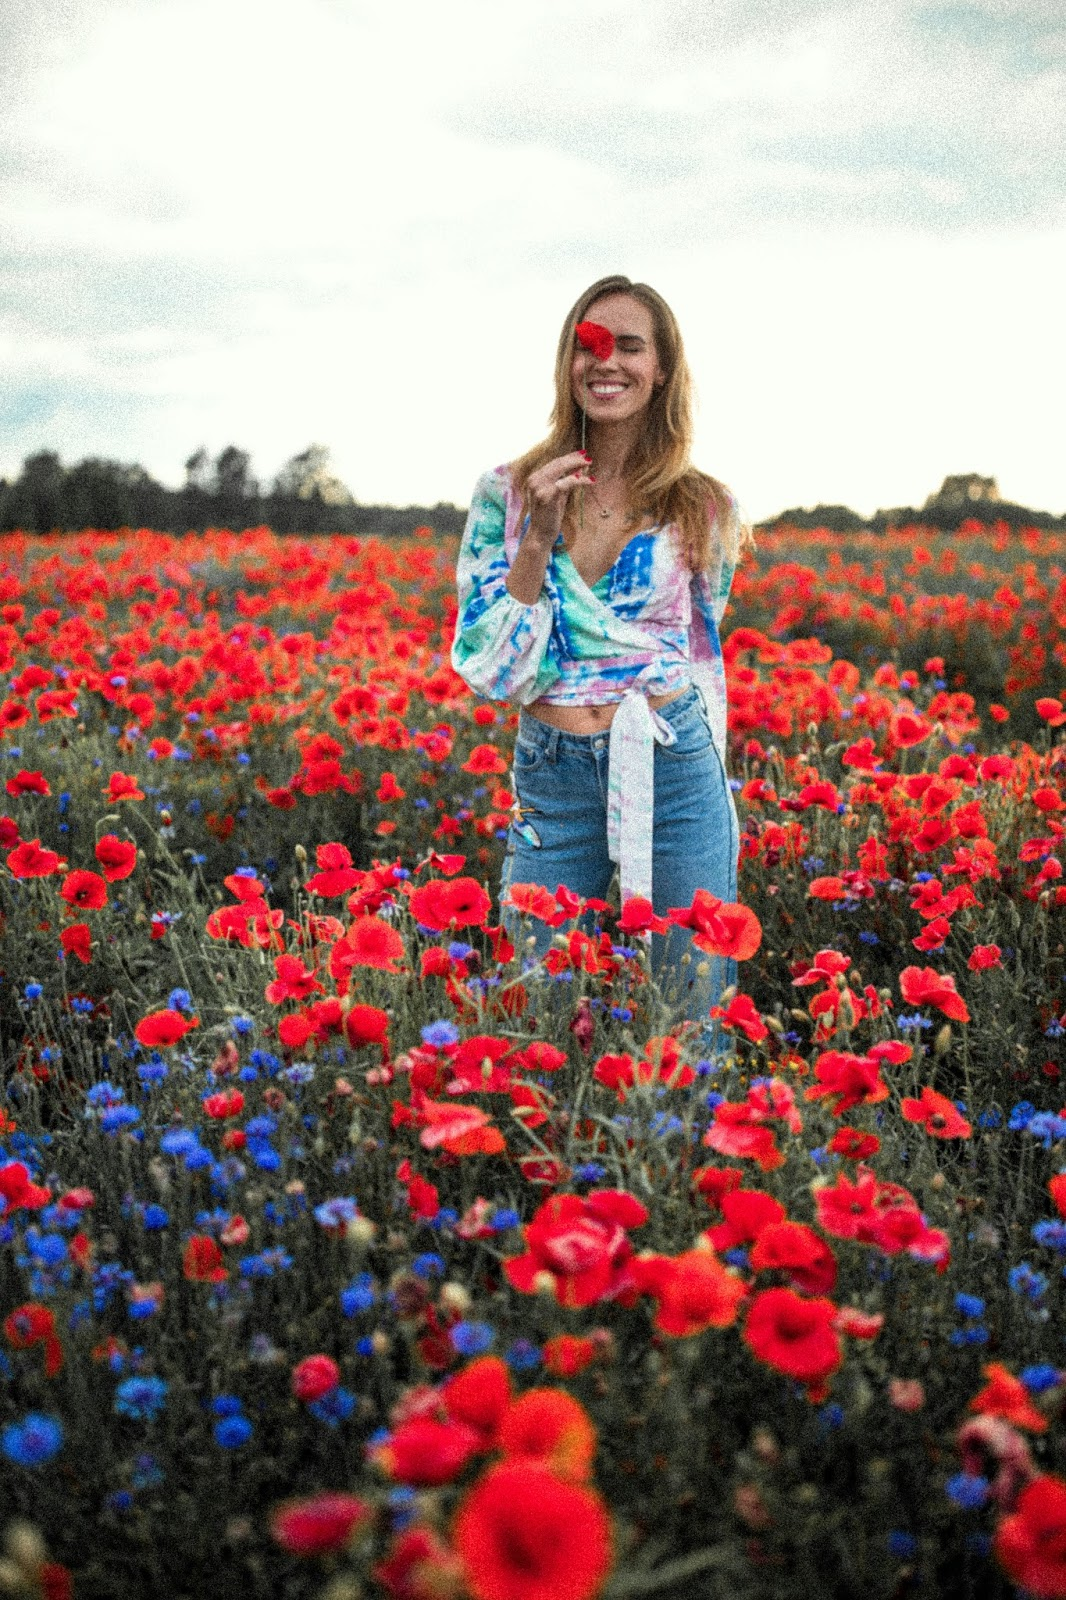 poppy field girl photography